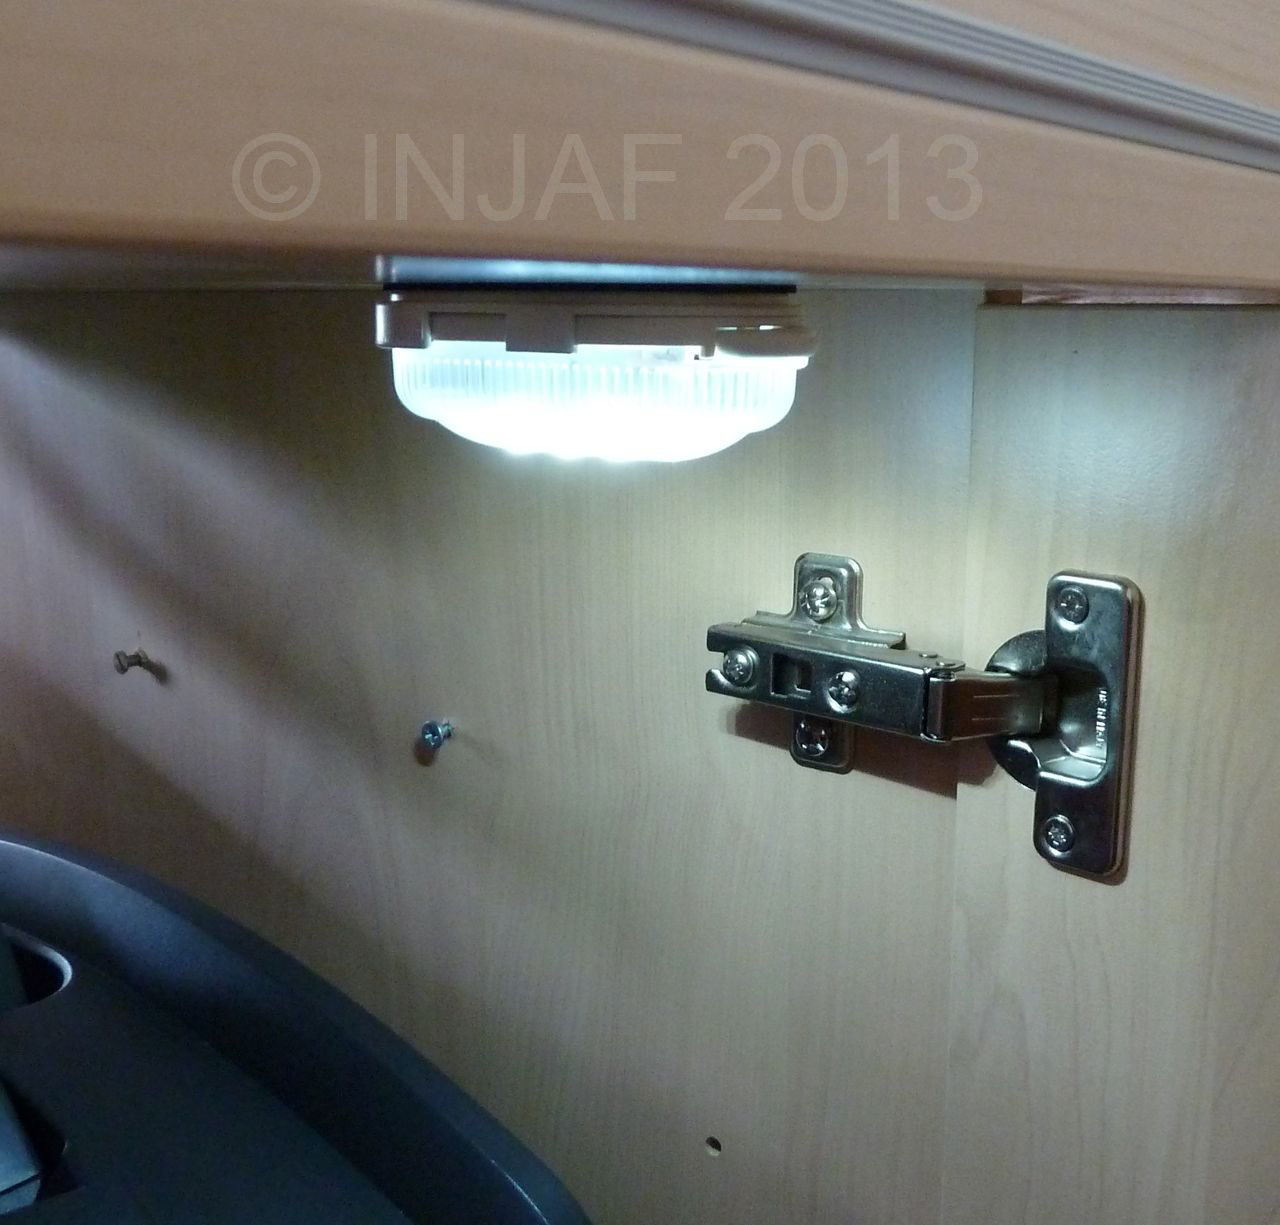 Battery Operated Cupboard Lights Beginner's Guide To Aquarium Equipment  Injaf